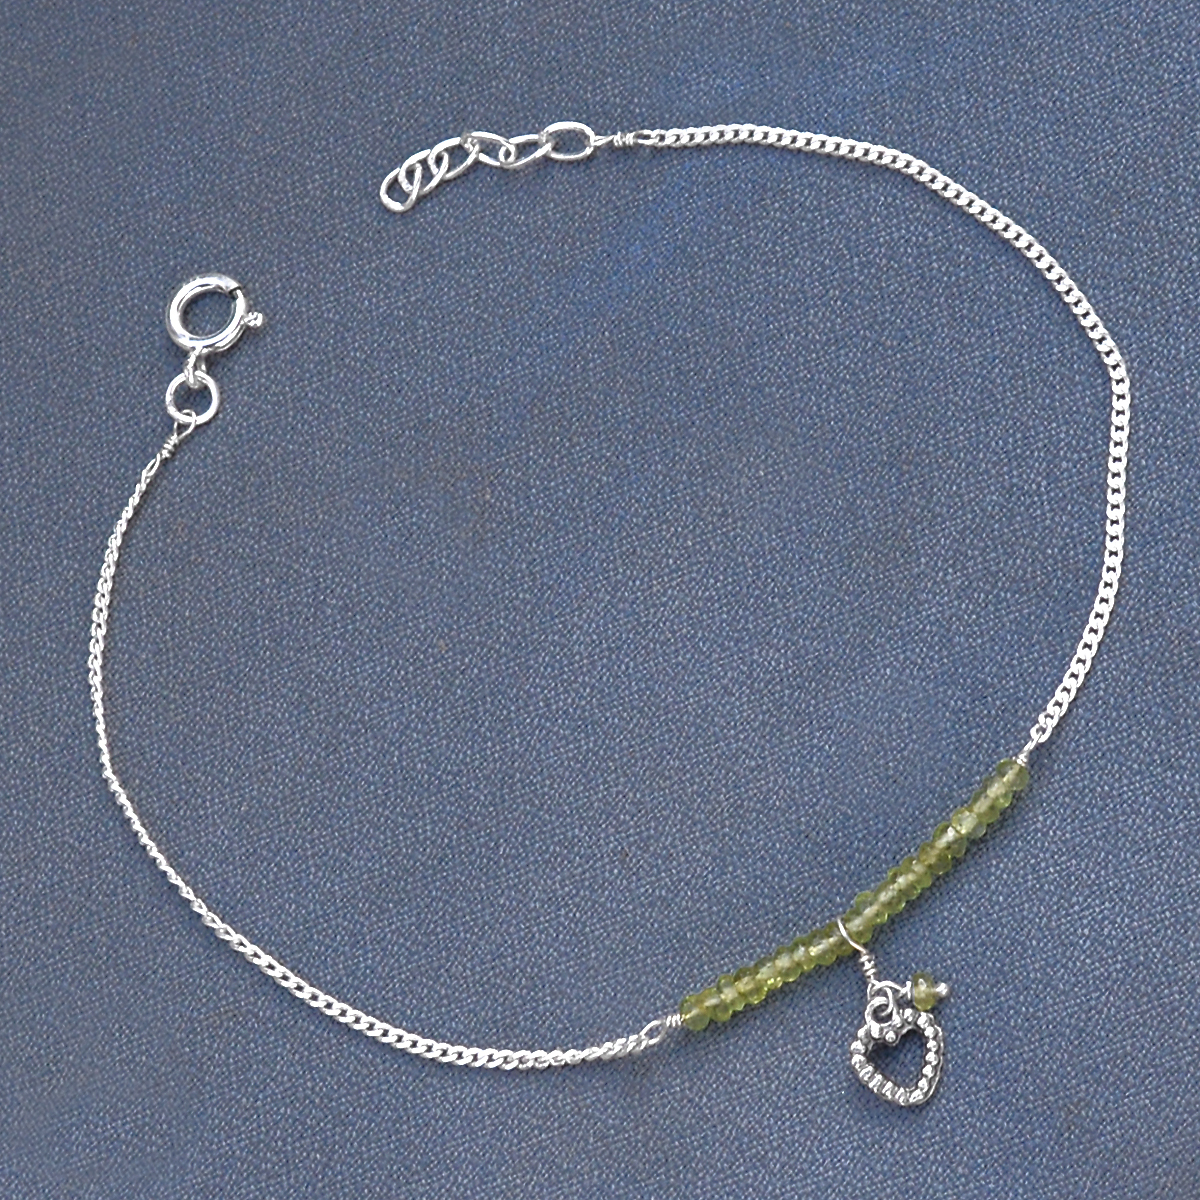 Jaipur Rajasthan India 3 mm Peridot Gemstone 925 Sterling Silver Handmade Jewelry Manufacturer Single Piece Anklet